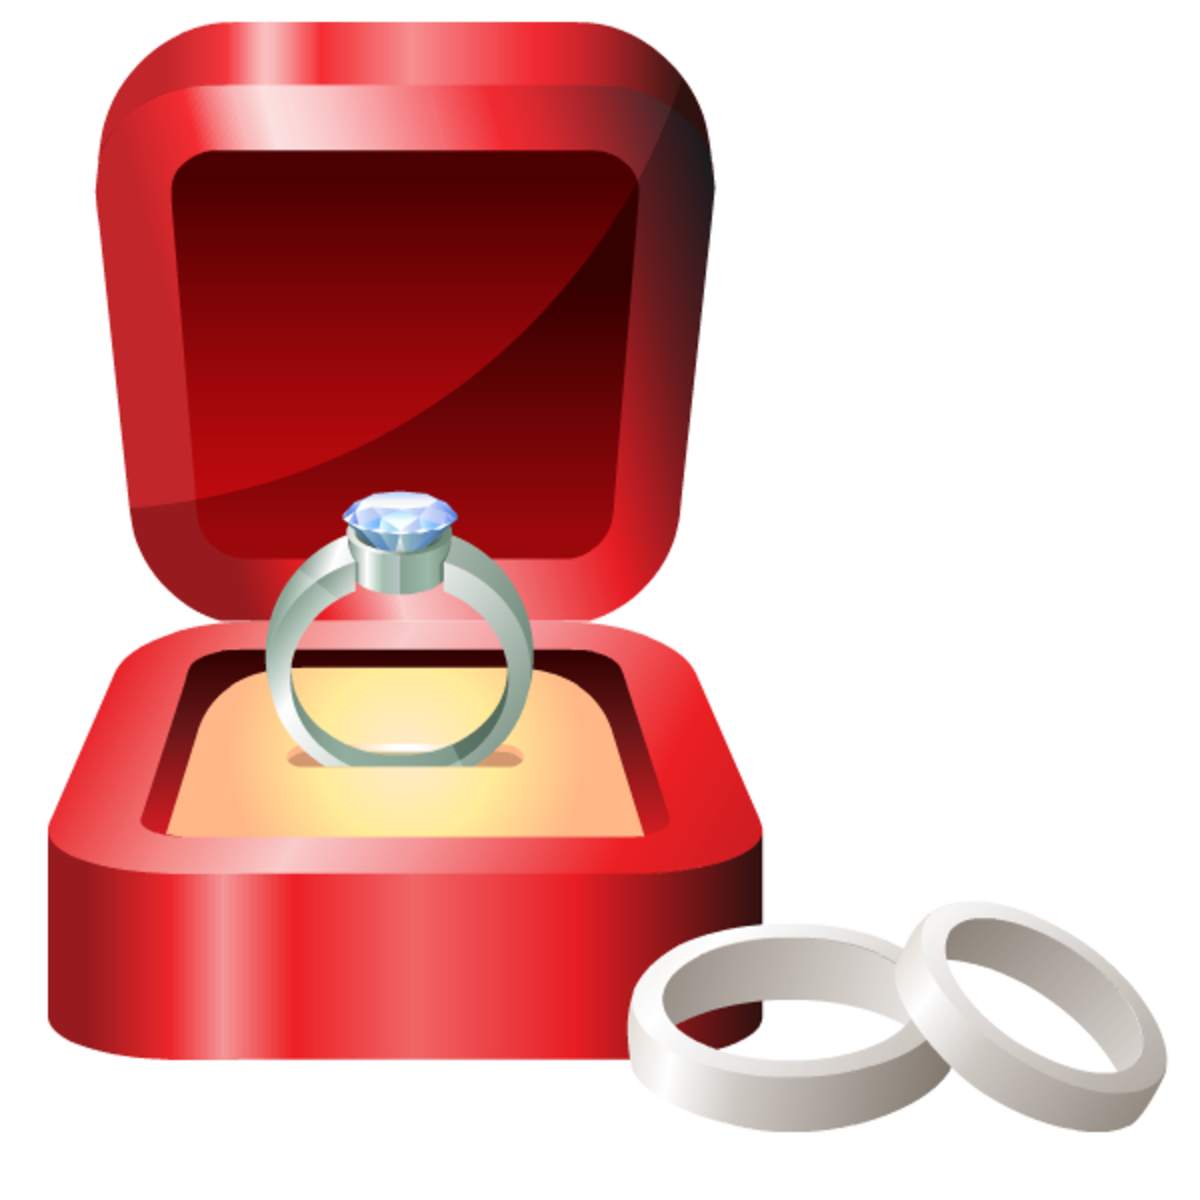 Platinum engagement ring in red velvet box with platinum wedding rings